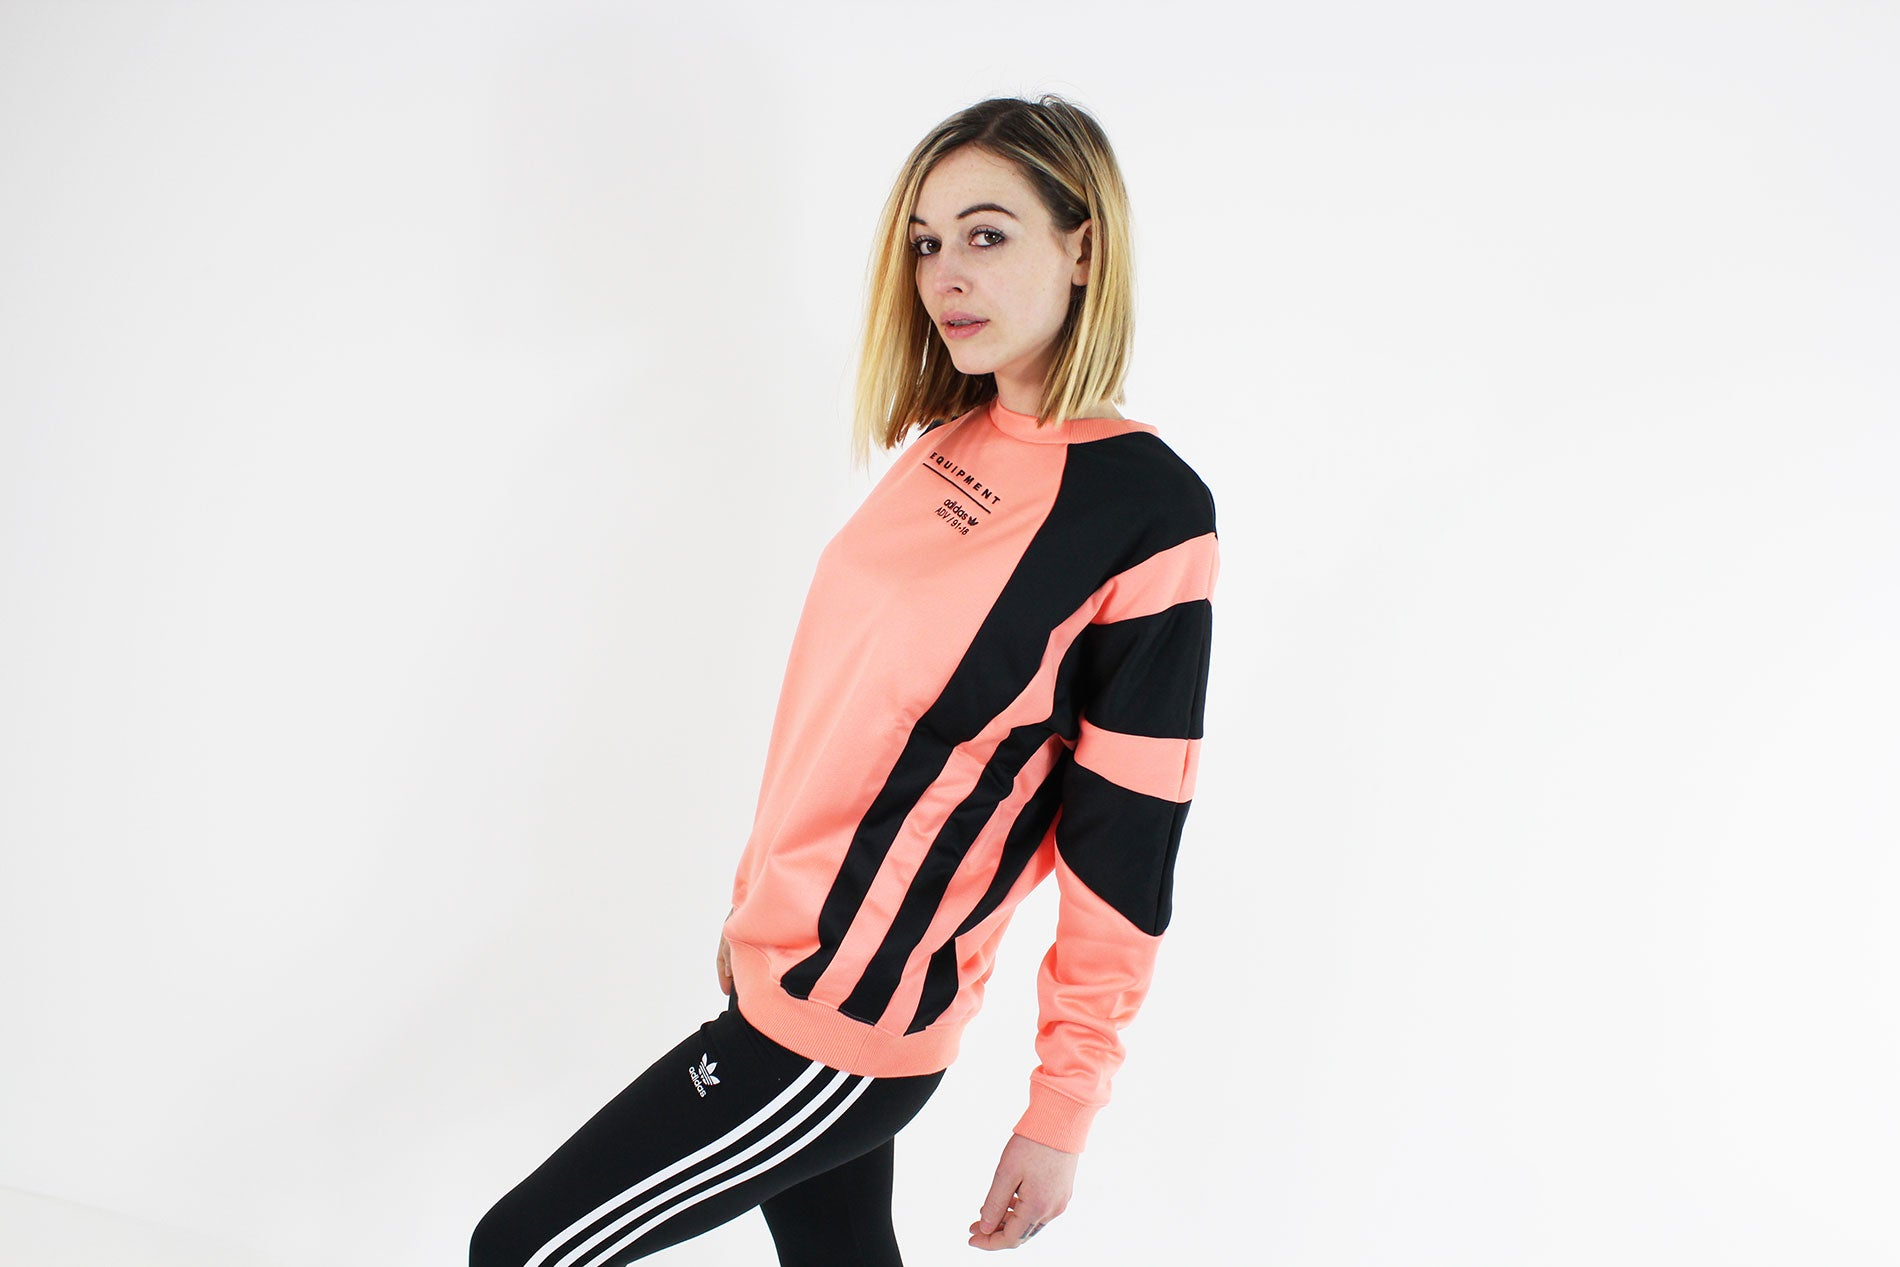 Adidas - EQT Sweatshirt Long Sleeve Women (Chacor) CD6868 - Sneakerworld 4bb02ecfa